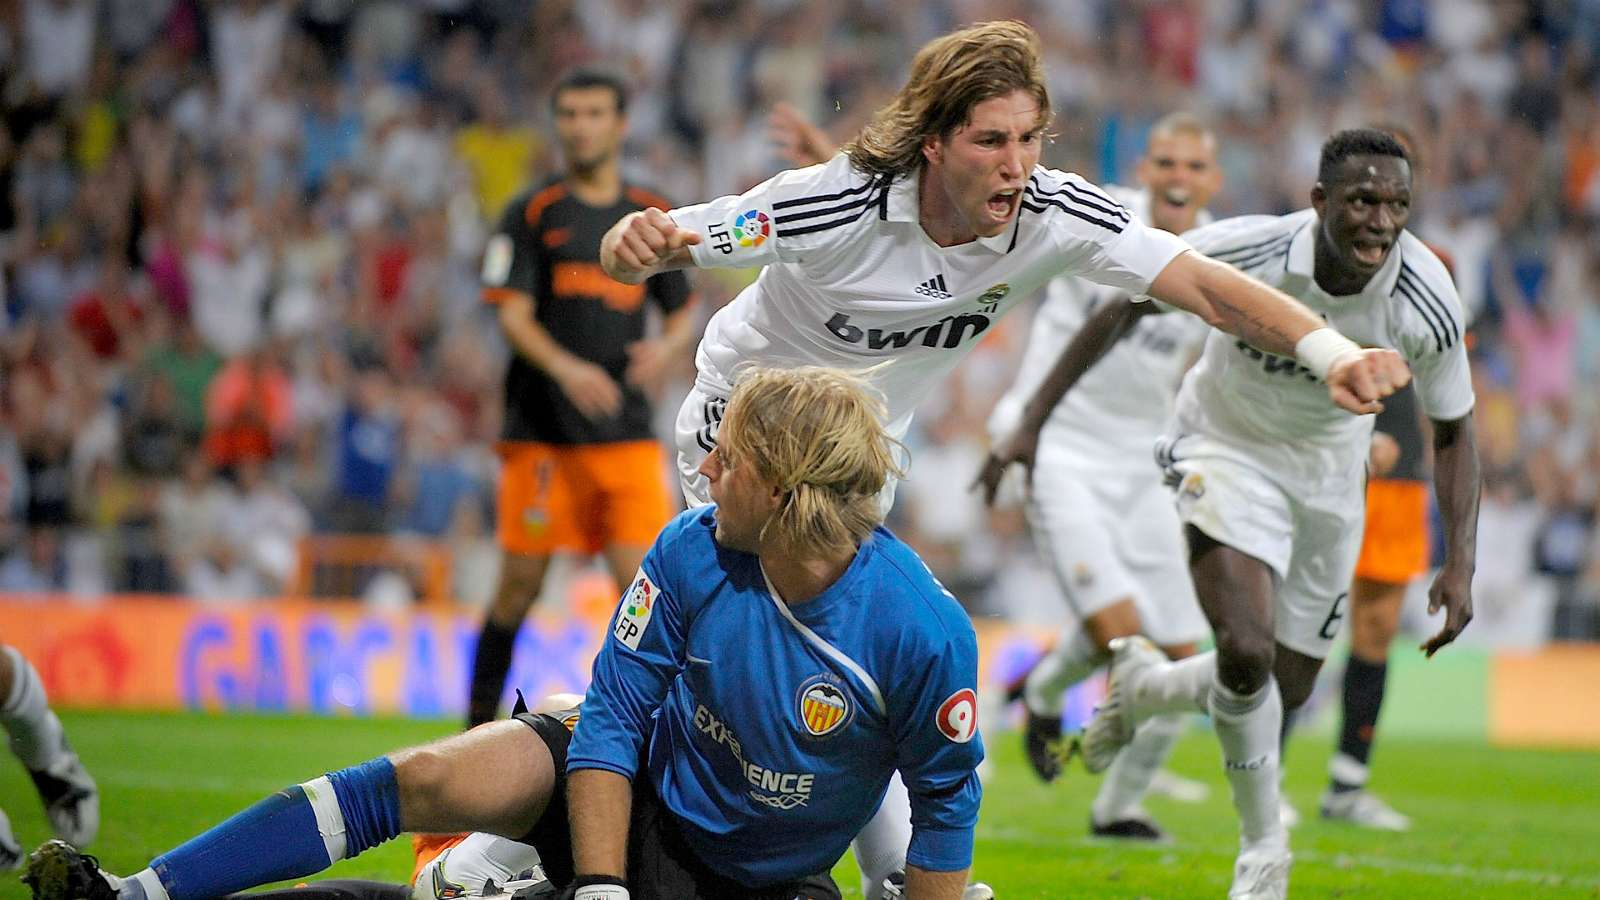 Real Madrid and Valencia clash | When the Royal Super scored with nine players